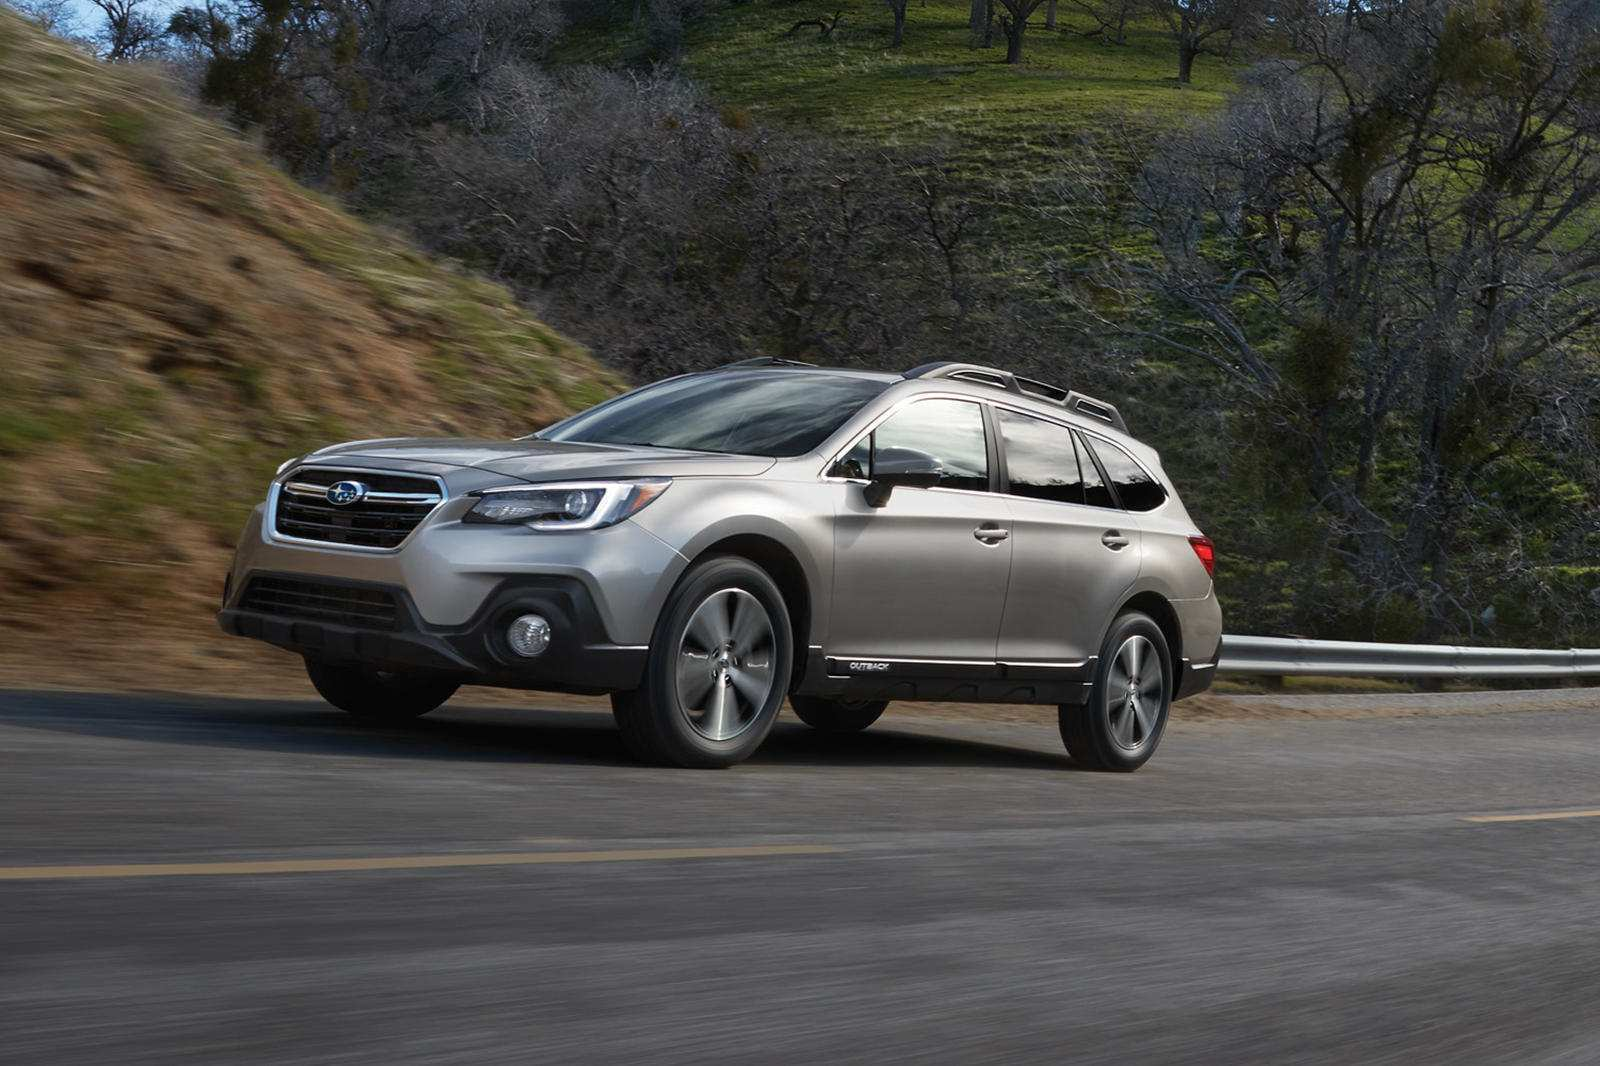 59 The 2020 Subaru Outback Turbo Research New